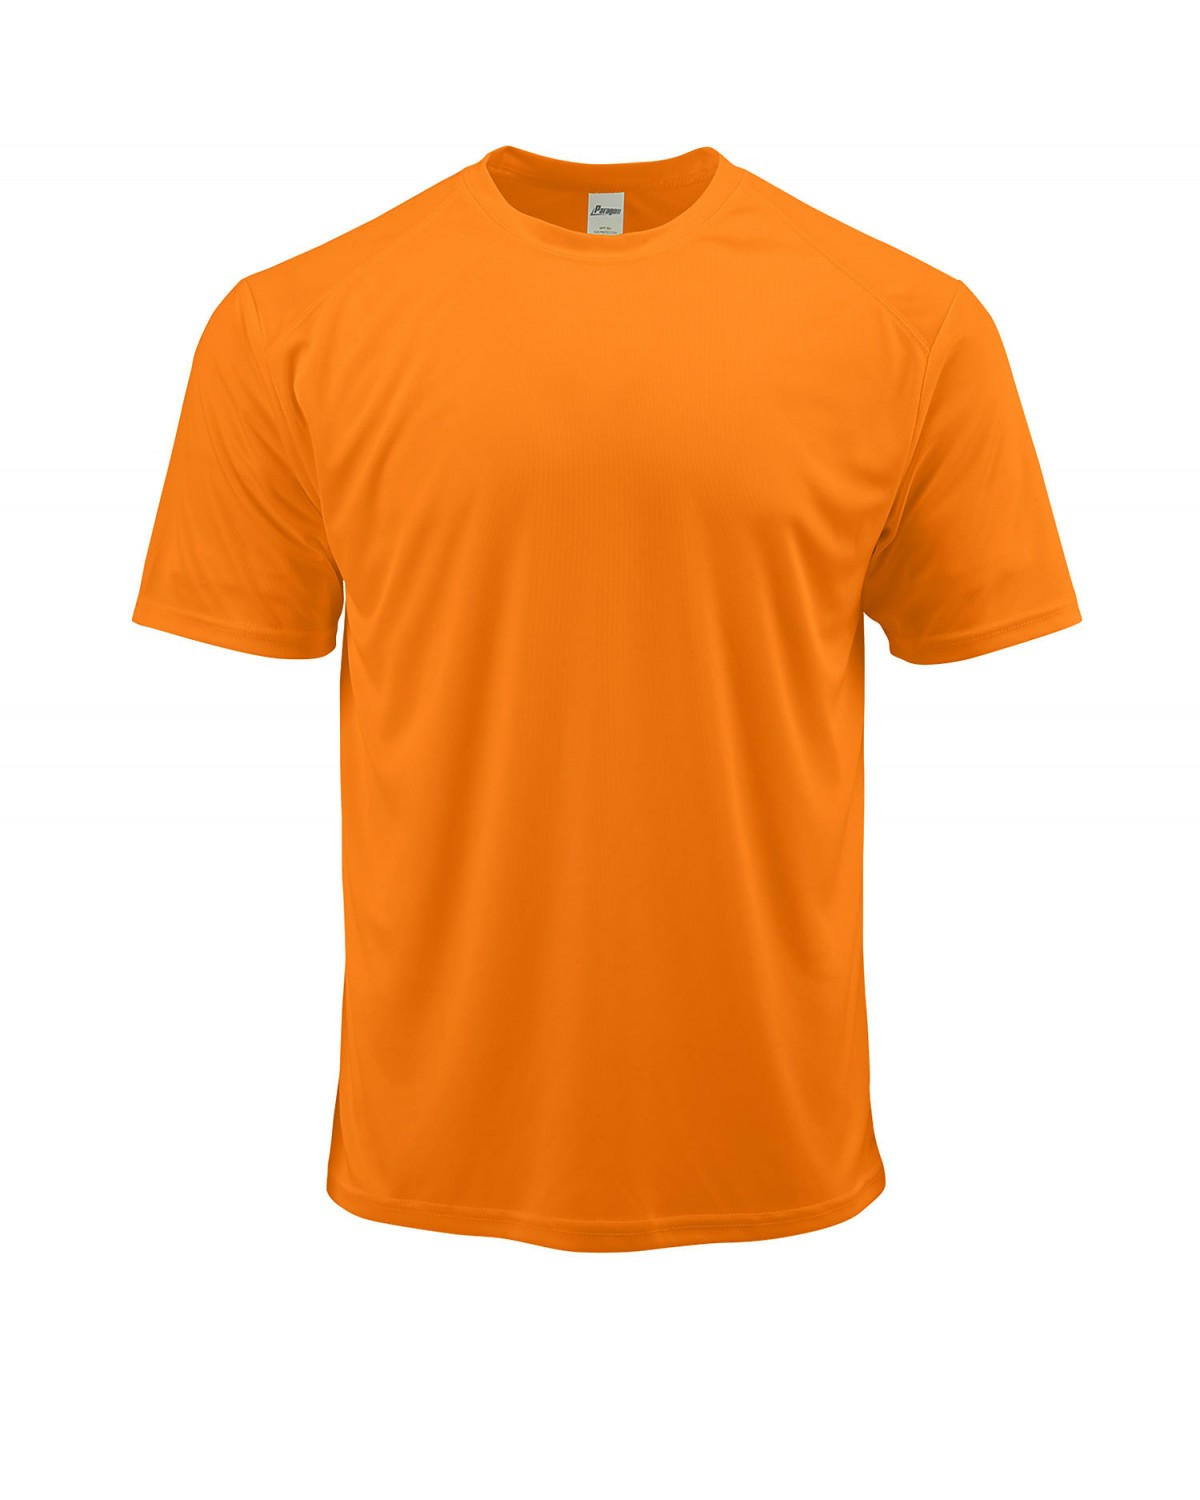 BG8964 Badger Sport Burnt Orange/White